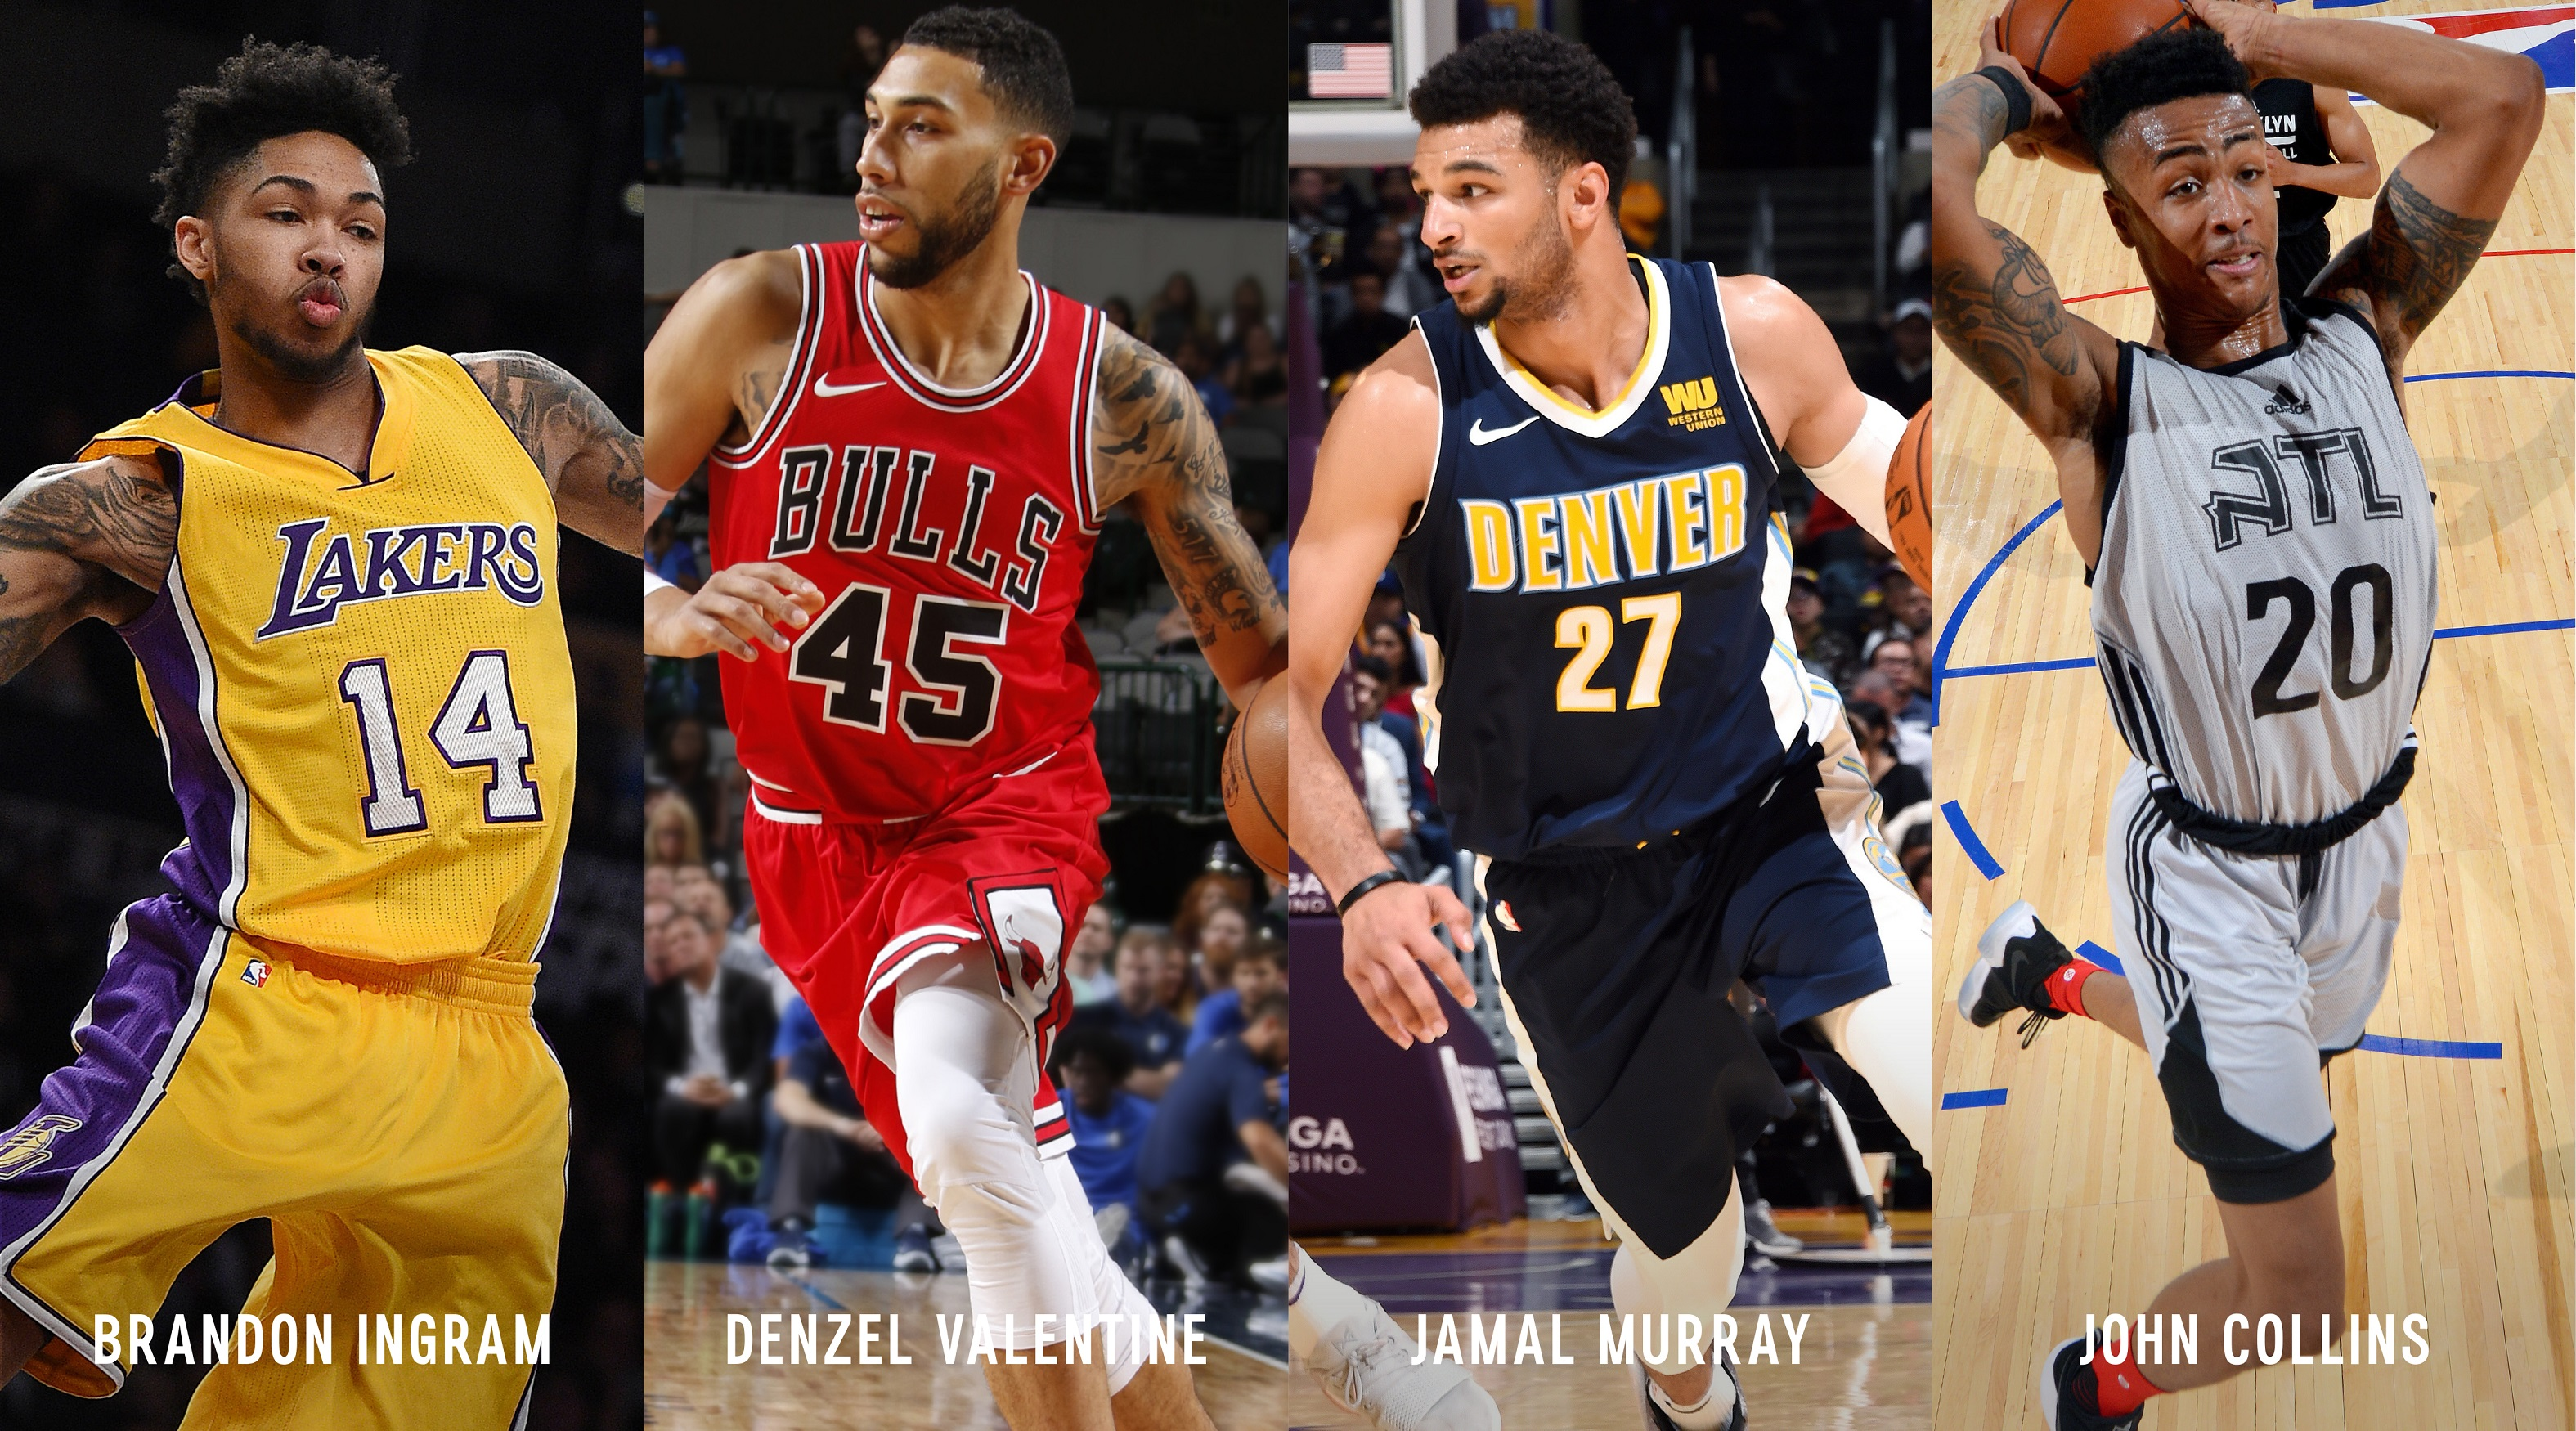 """NBA Players Star In Express Clothing's """"Game Changers"""" Campaign: Brandon Ingram, Denzel Valentine, Jamal Murray & John Collins"""